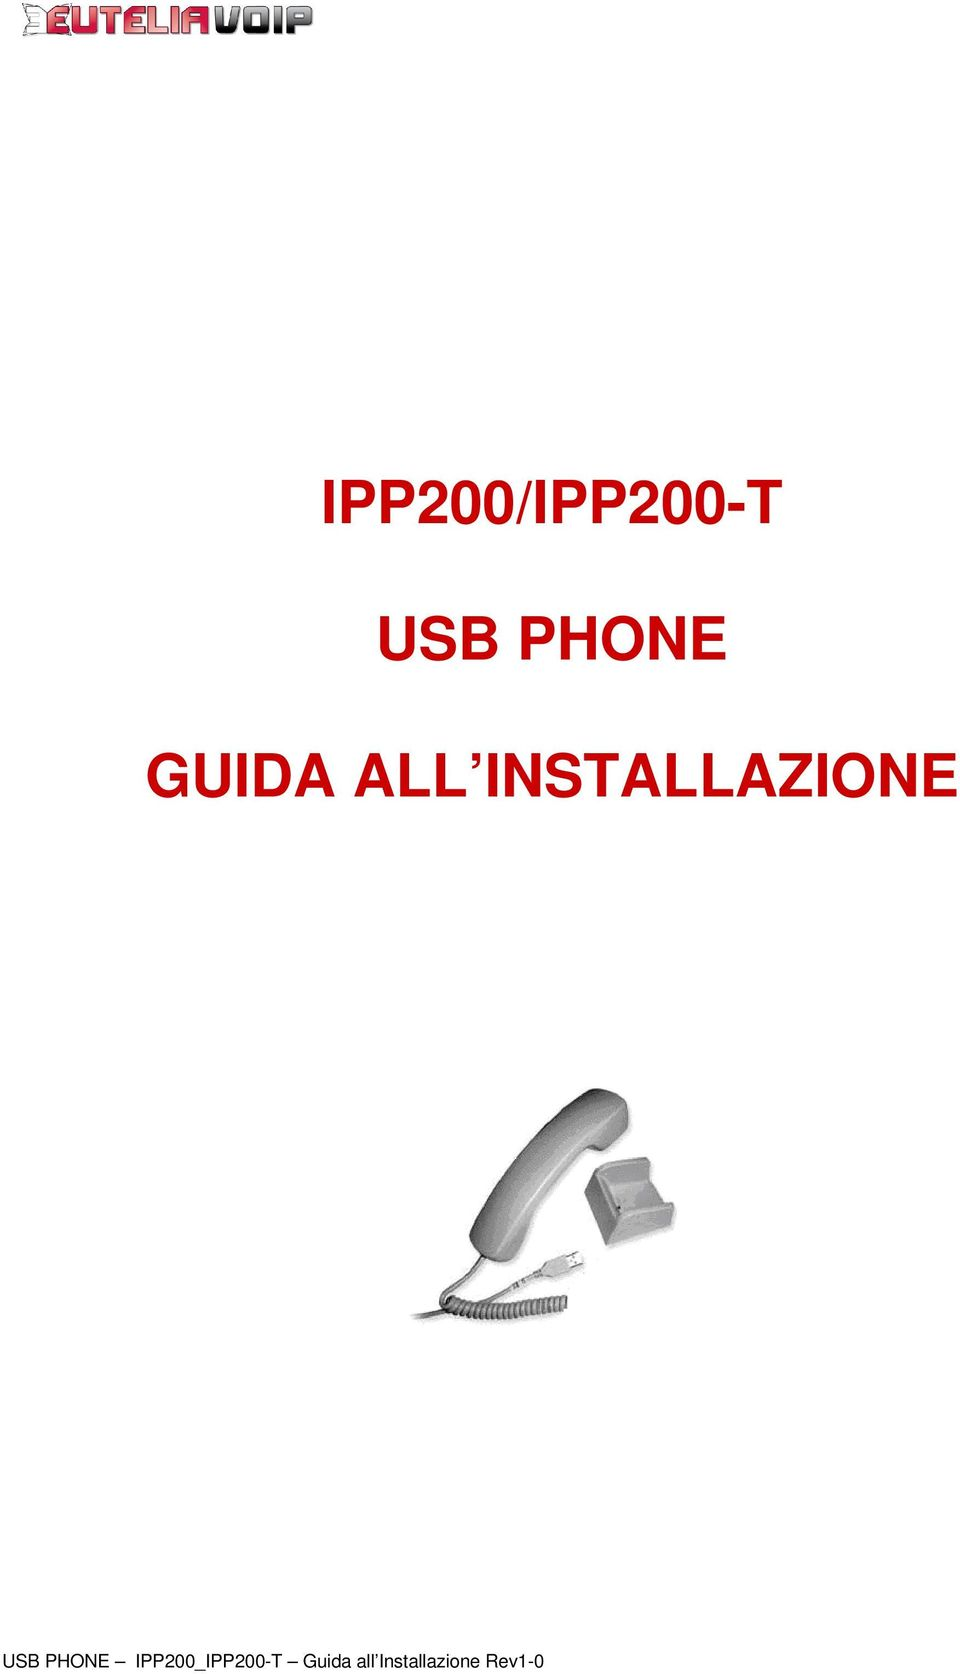 USB PHONE IPP200_IPP200-T